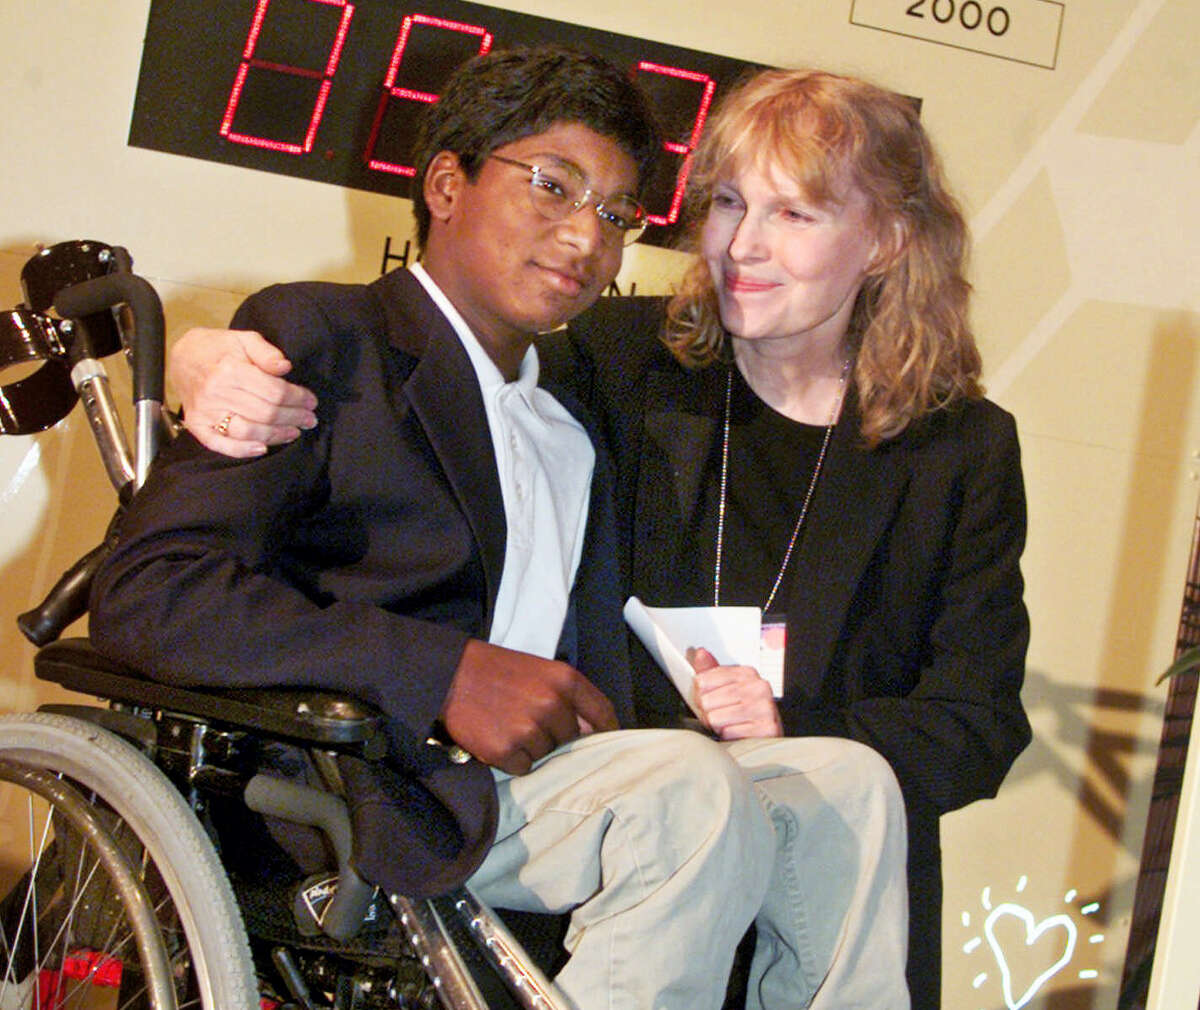 In this Sept. 27, 2000 file photo, actress Mia Farrow poses with her adopted son Thaddeus as they participate in the global summit on polio eradication at United Nations headquarters. Thaddeus Wilk Farrow, died, Wednesday, Sept 21, 2016, after being found seriously injured in his vehicle in Connecticut. The actress adopted Thaddeus, who contracted polio in an orphanage in Kolkata, India, and was paralyzed from the waist down. He was 27.